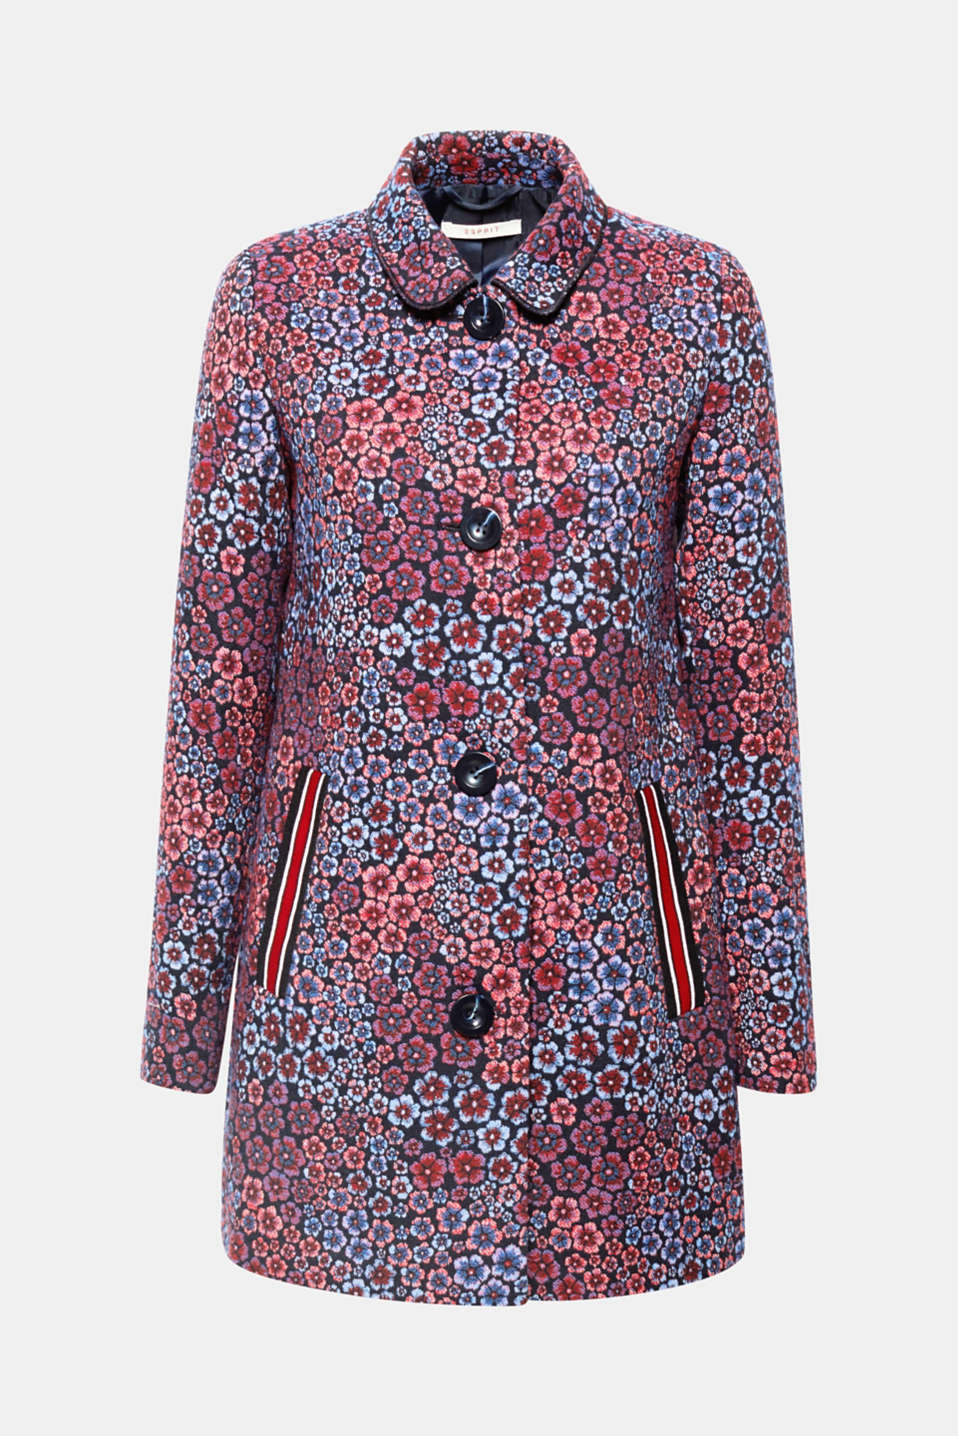 Spice up your look with this stand-out coat featuring jacquard flowers and slit pockets with sporty details!